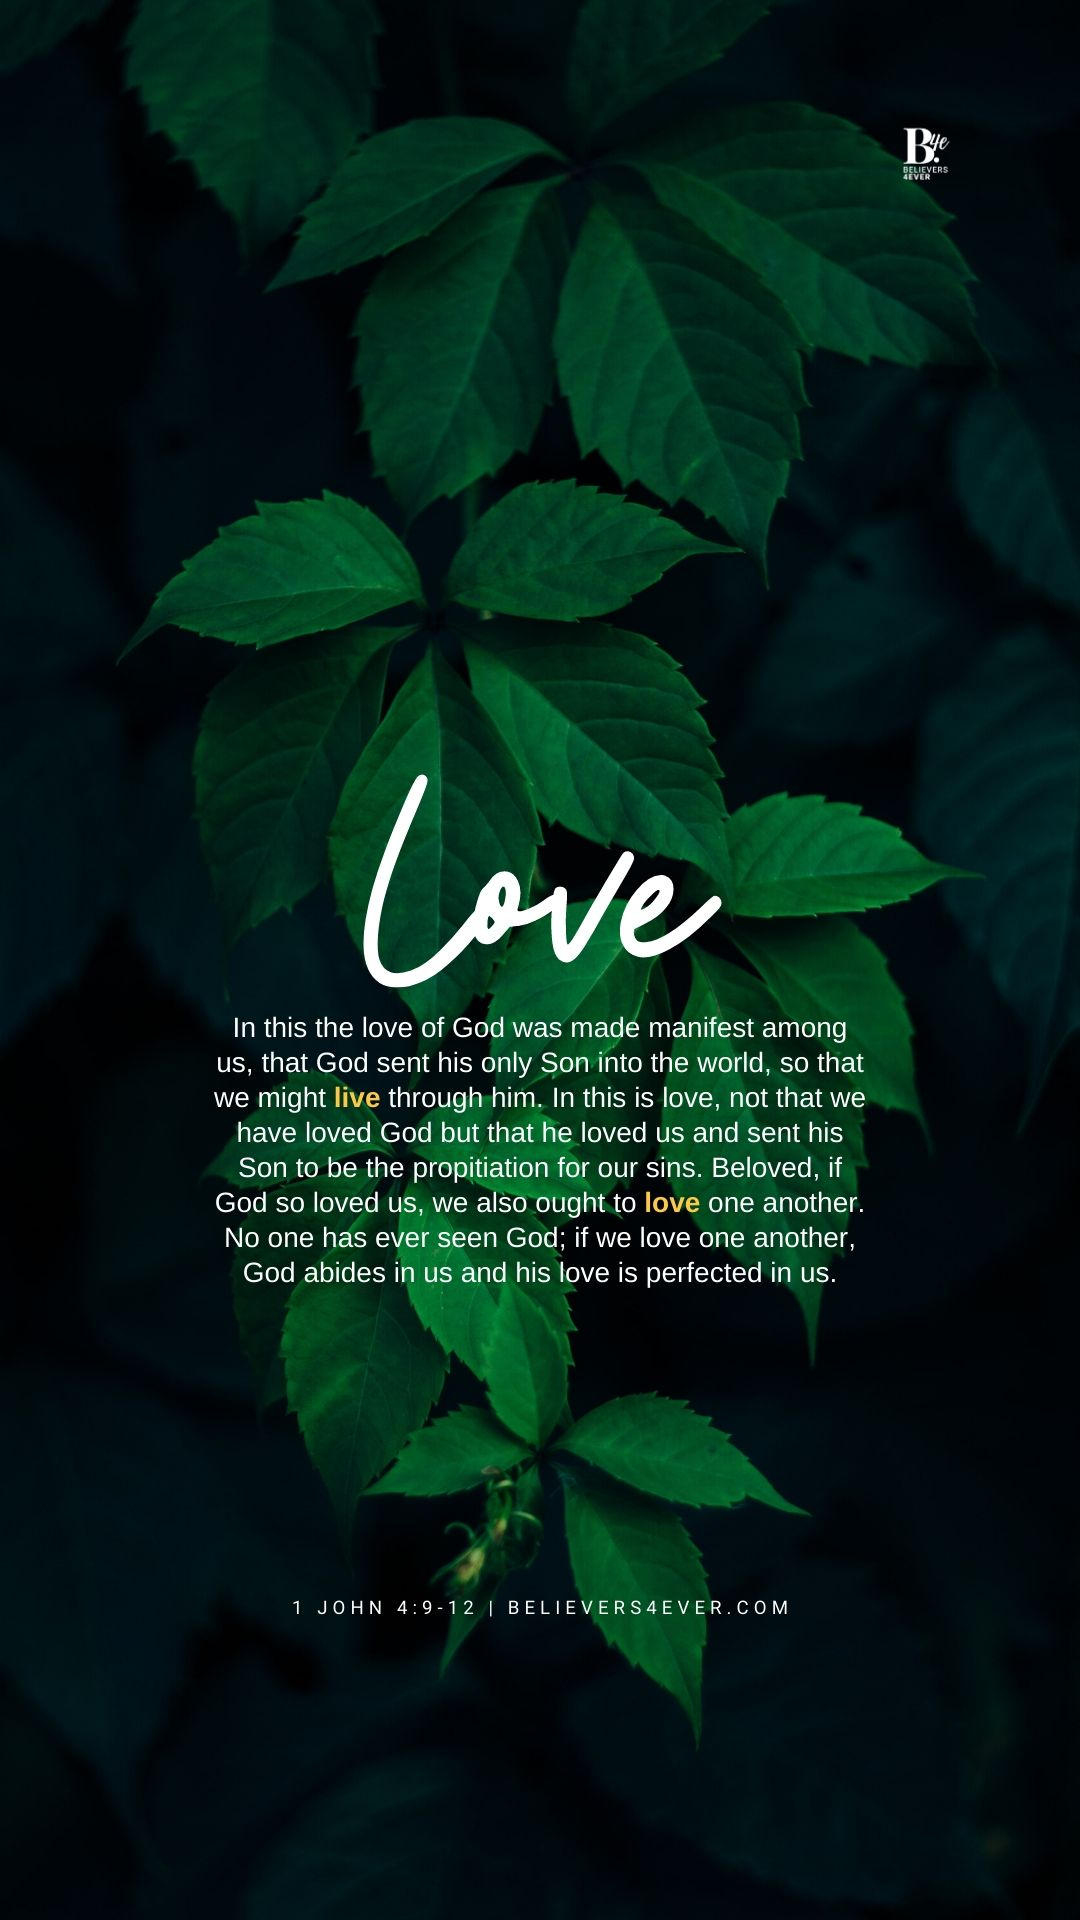 The Love Of God Mobile Wallpaper Believers4ever Com